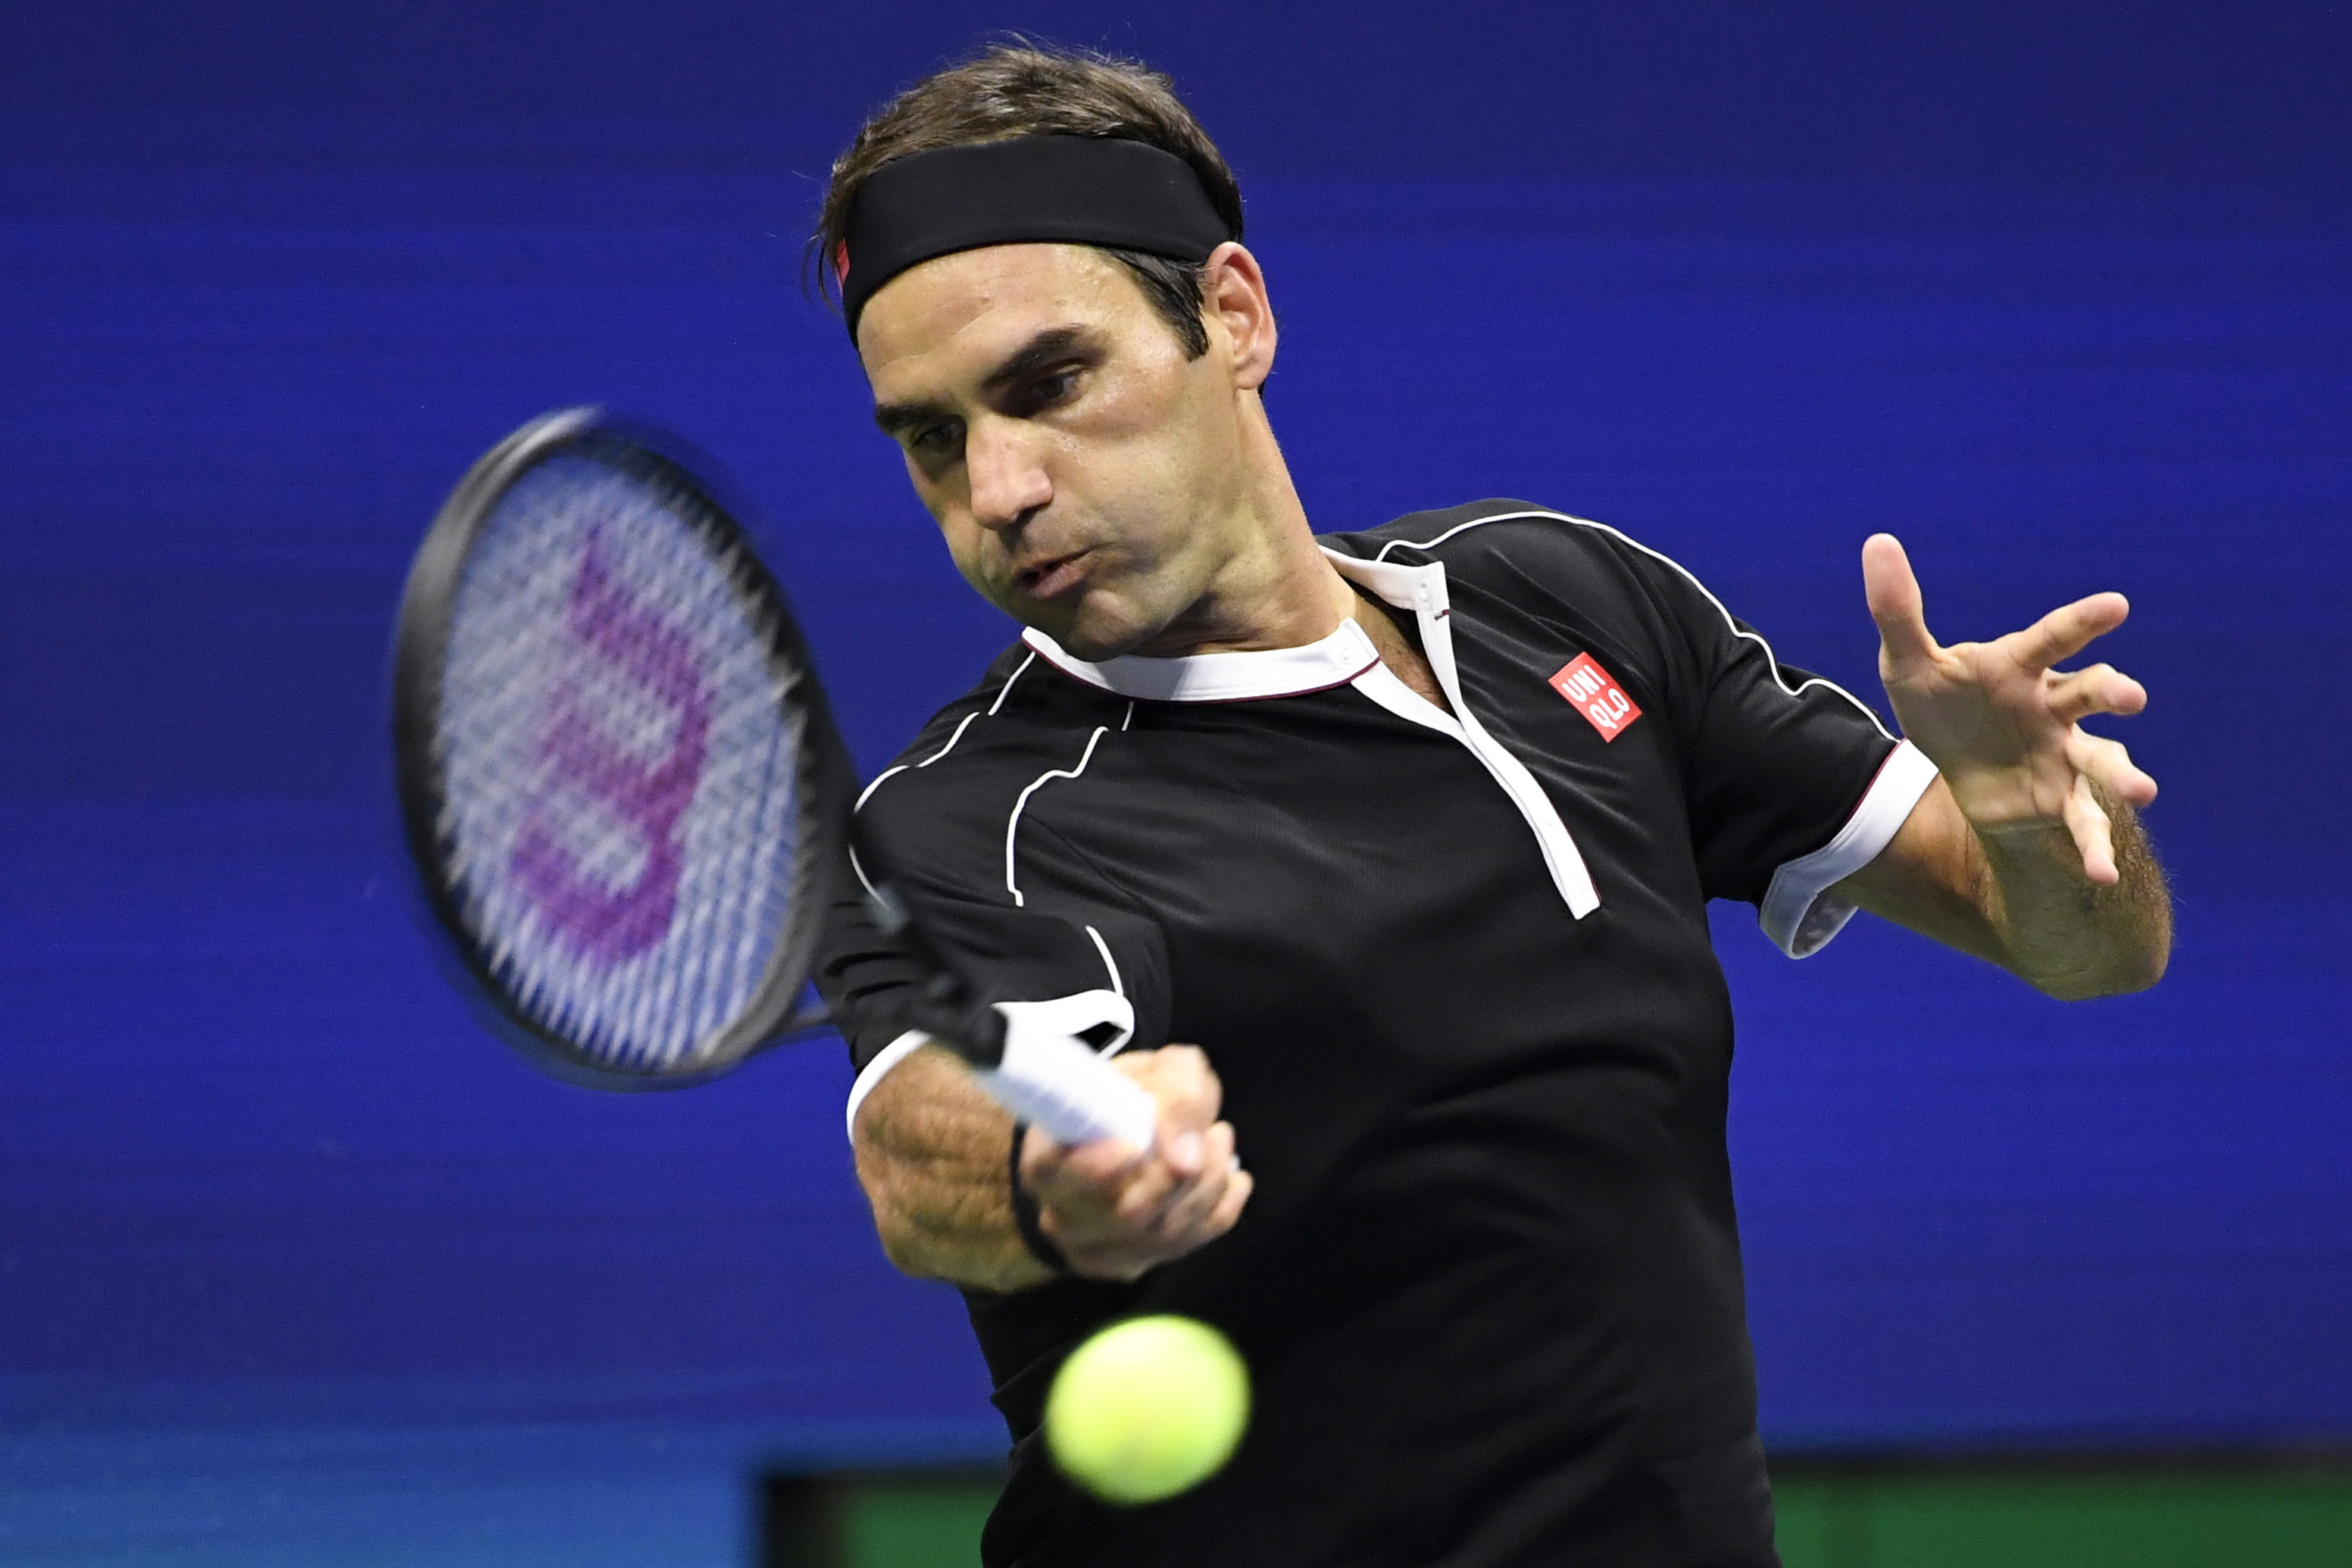 Roger Federer and Juan Martin del Potro will play an exhibition match in Buenos Aires on November 20. — Reuters pic